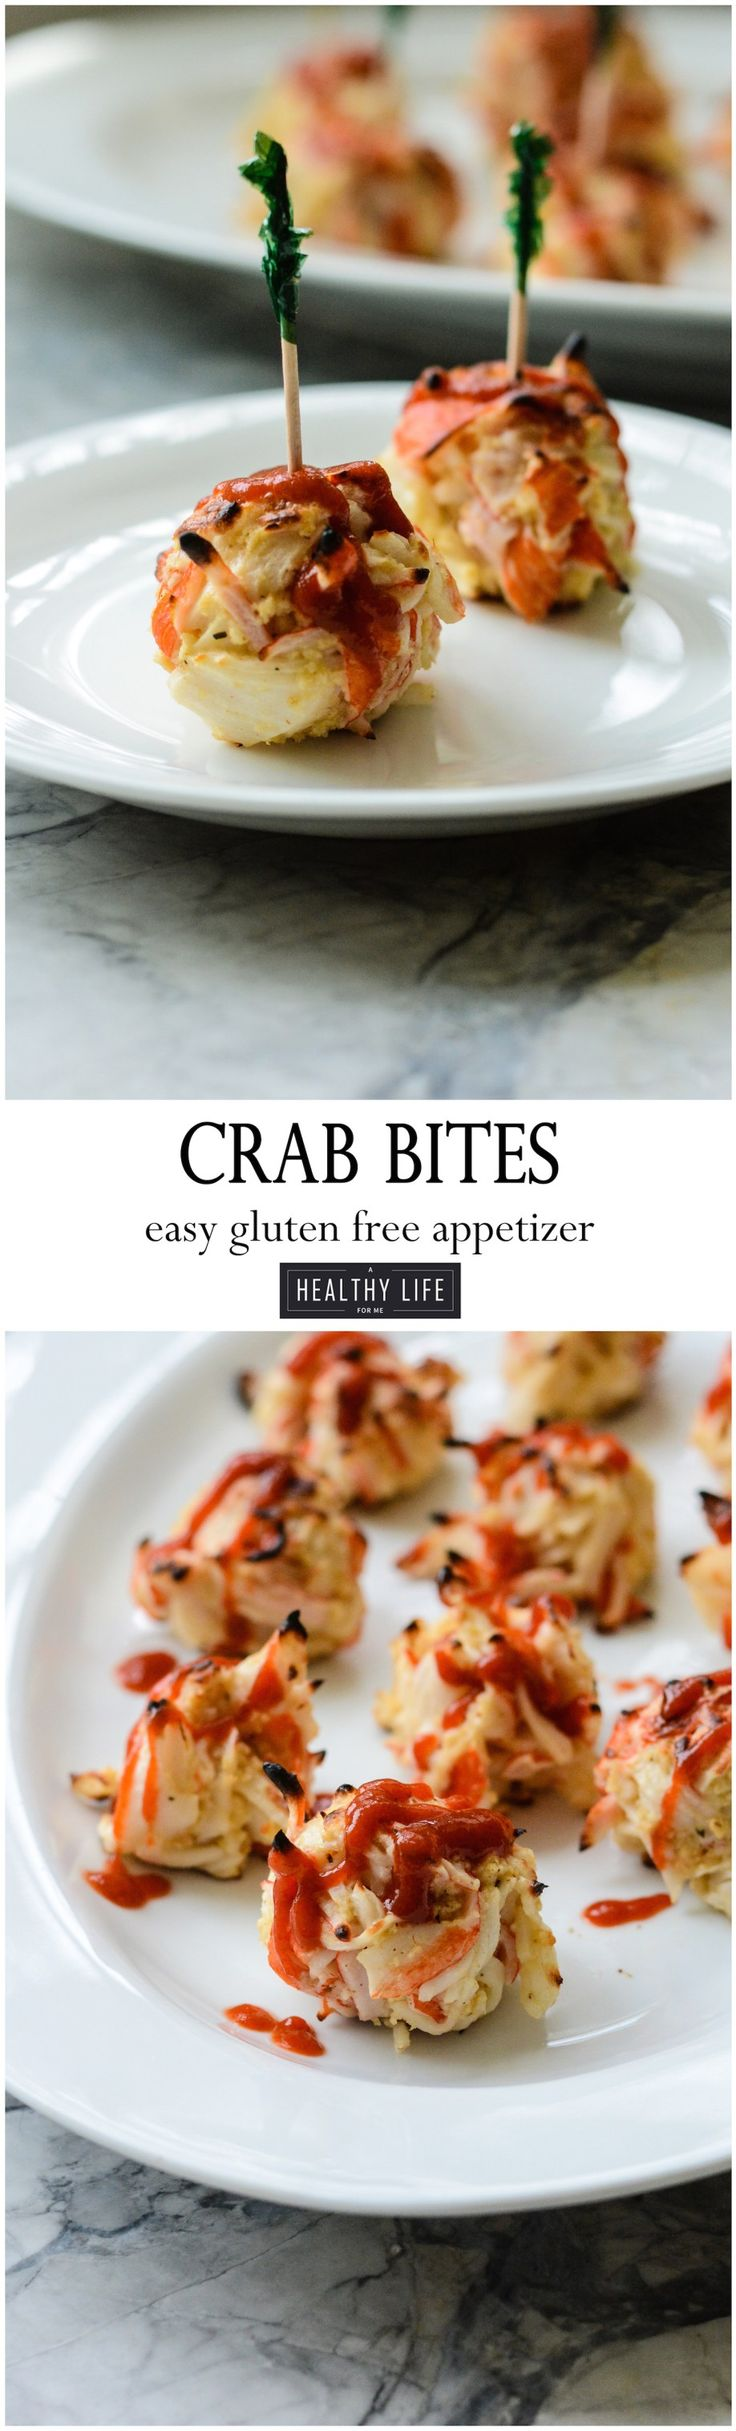 These Spicy Crab Bites are an inexpensive, quick and easy recipe that are perfect to serve at your next party or barbecue. These gluten free bites only take 20 minutes to prepare   ahealthylifeforme.com